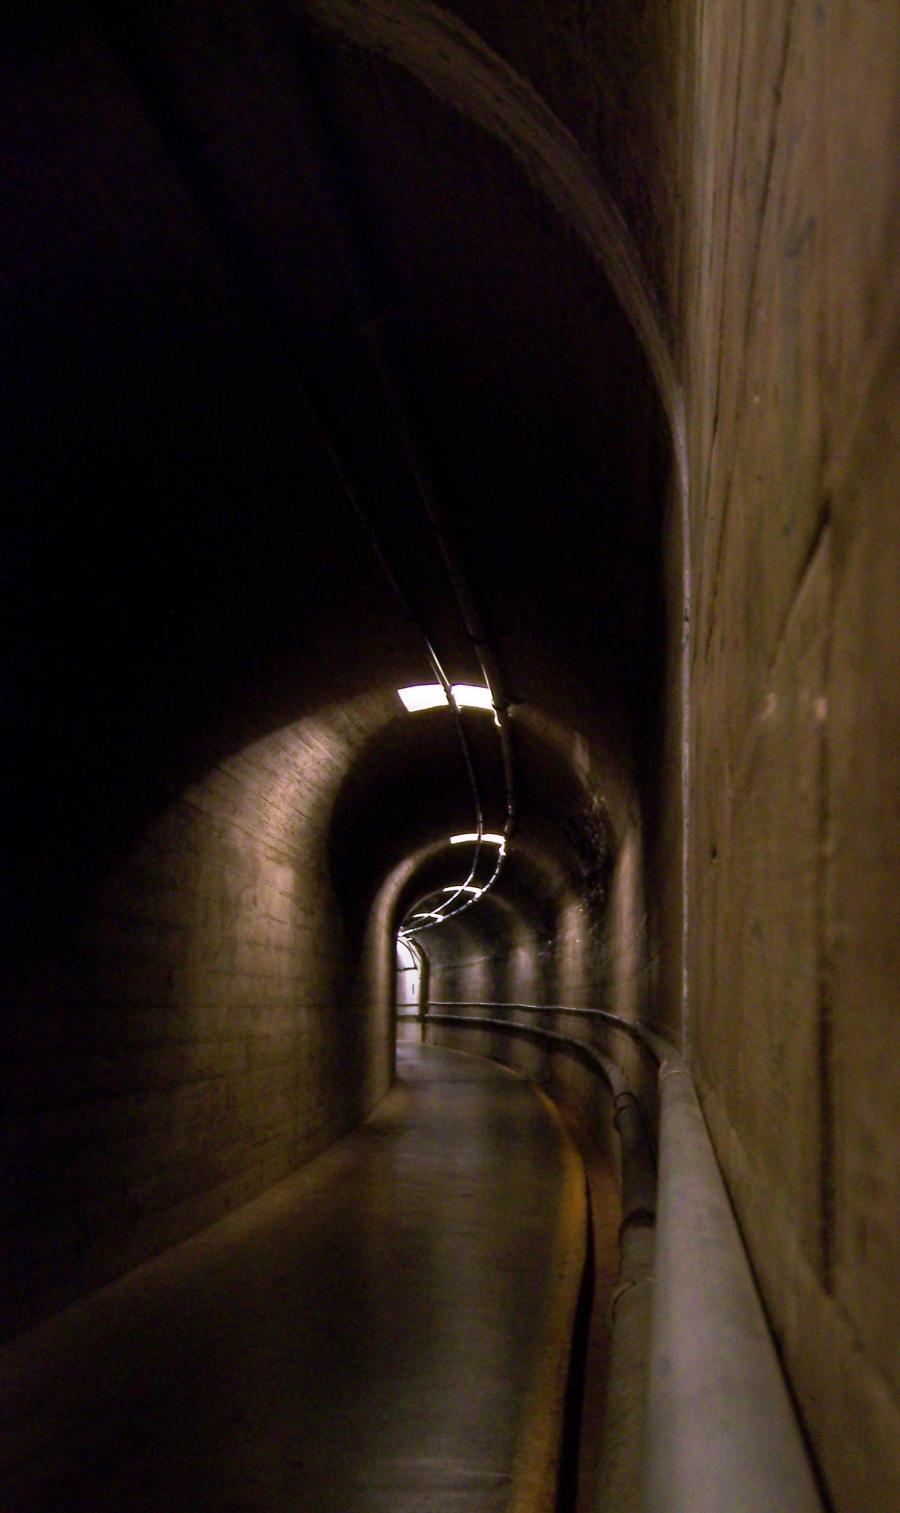 File:Corridors in Hoover Dam, Nv.jpg